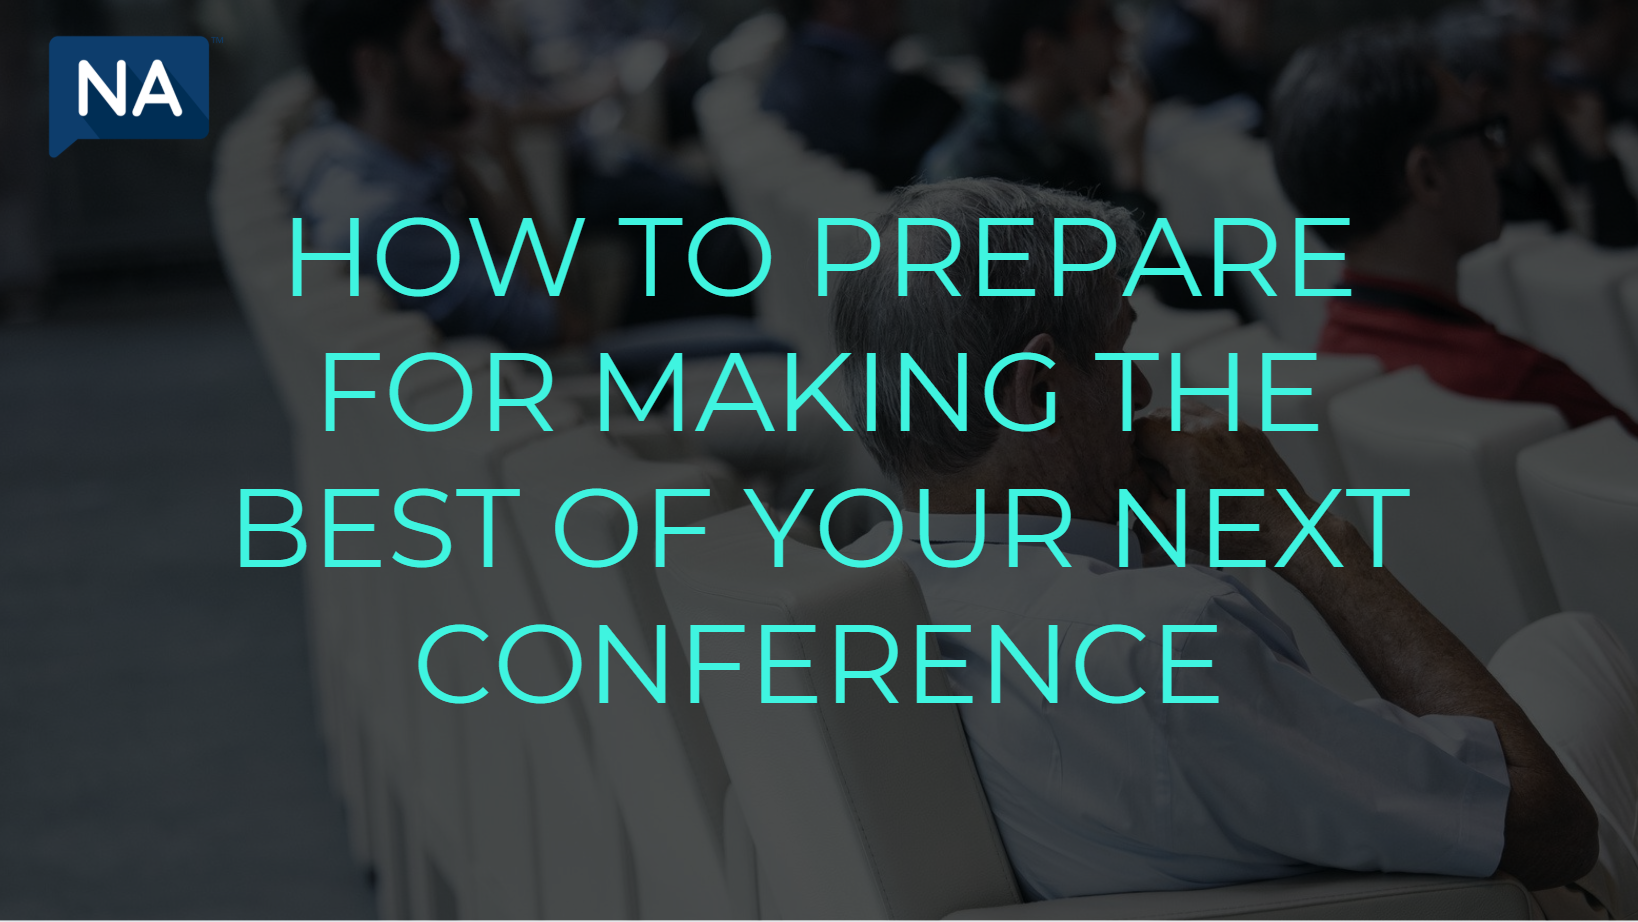 How to Prepare for Making the Best of Your Next Conference